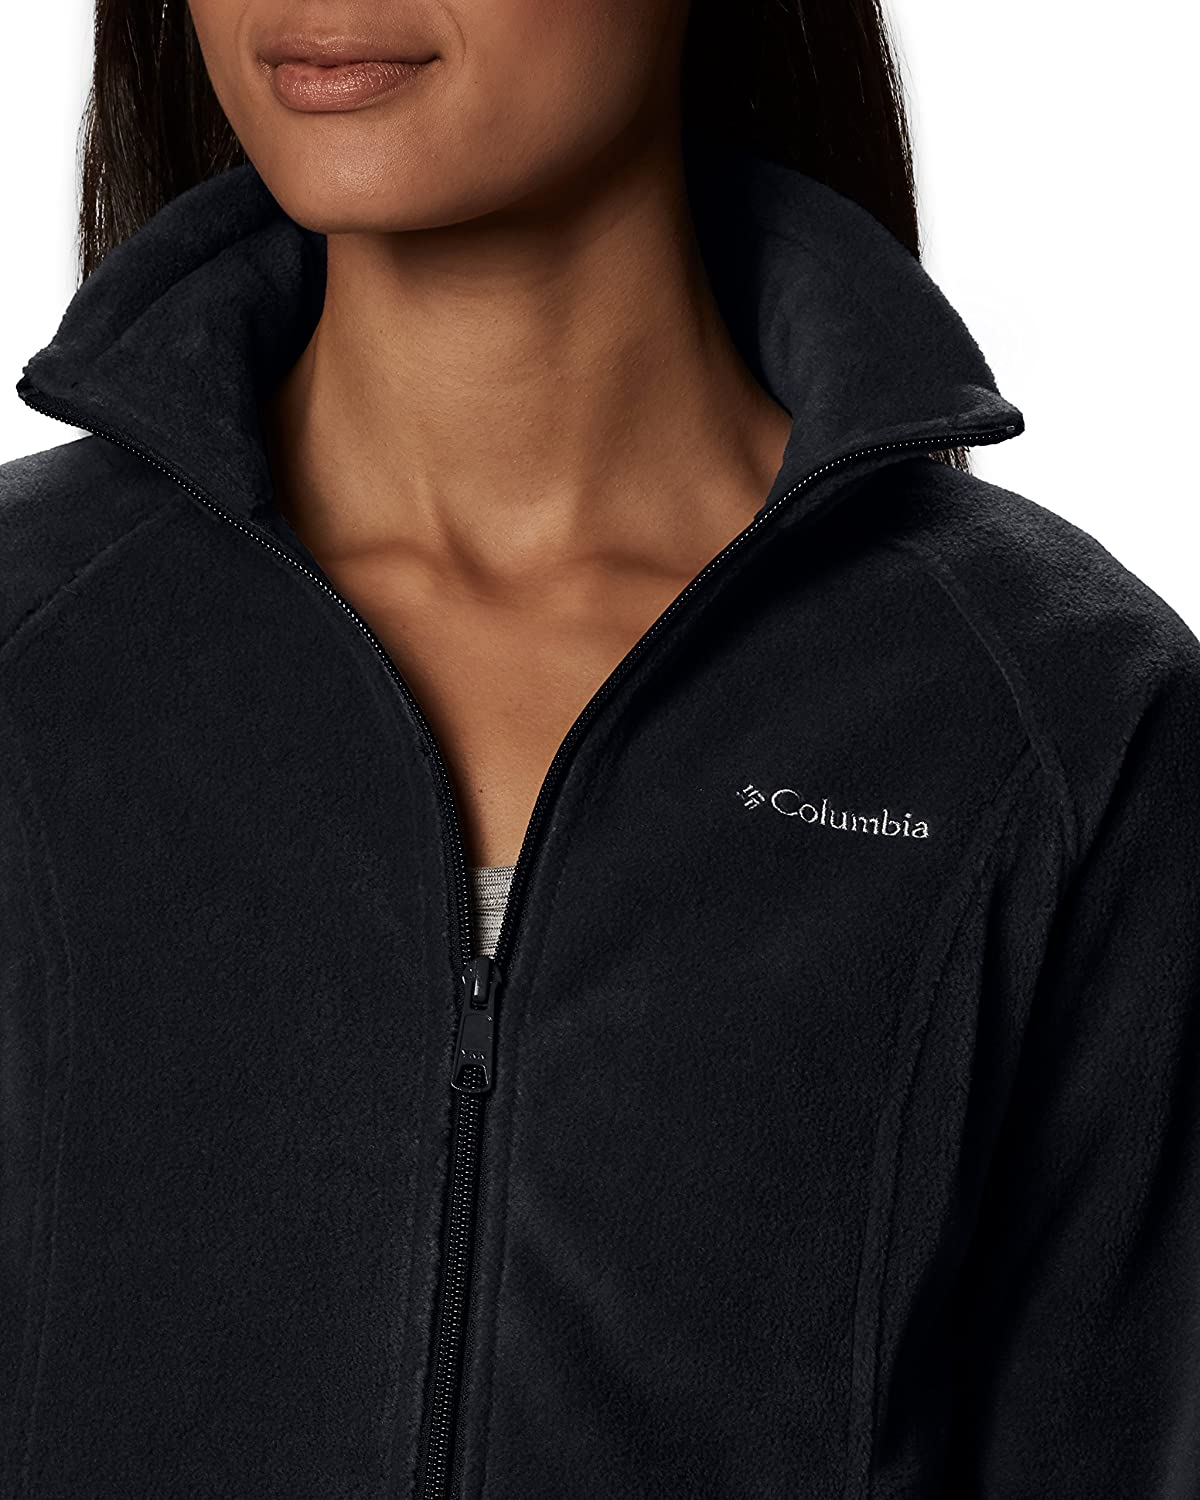 93fee7d3925 Columbia Women s Benton Springs Full Zip Jacket